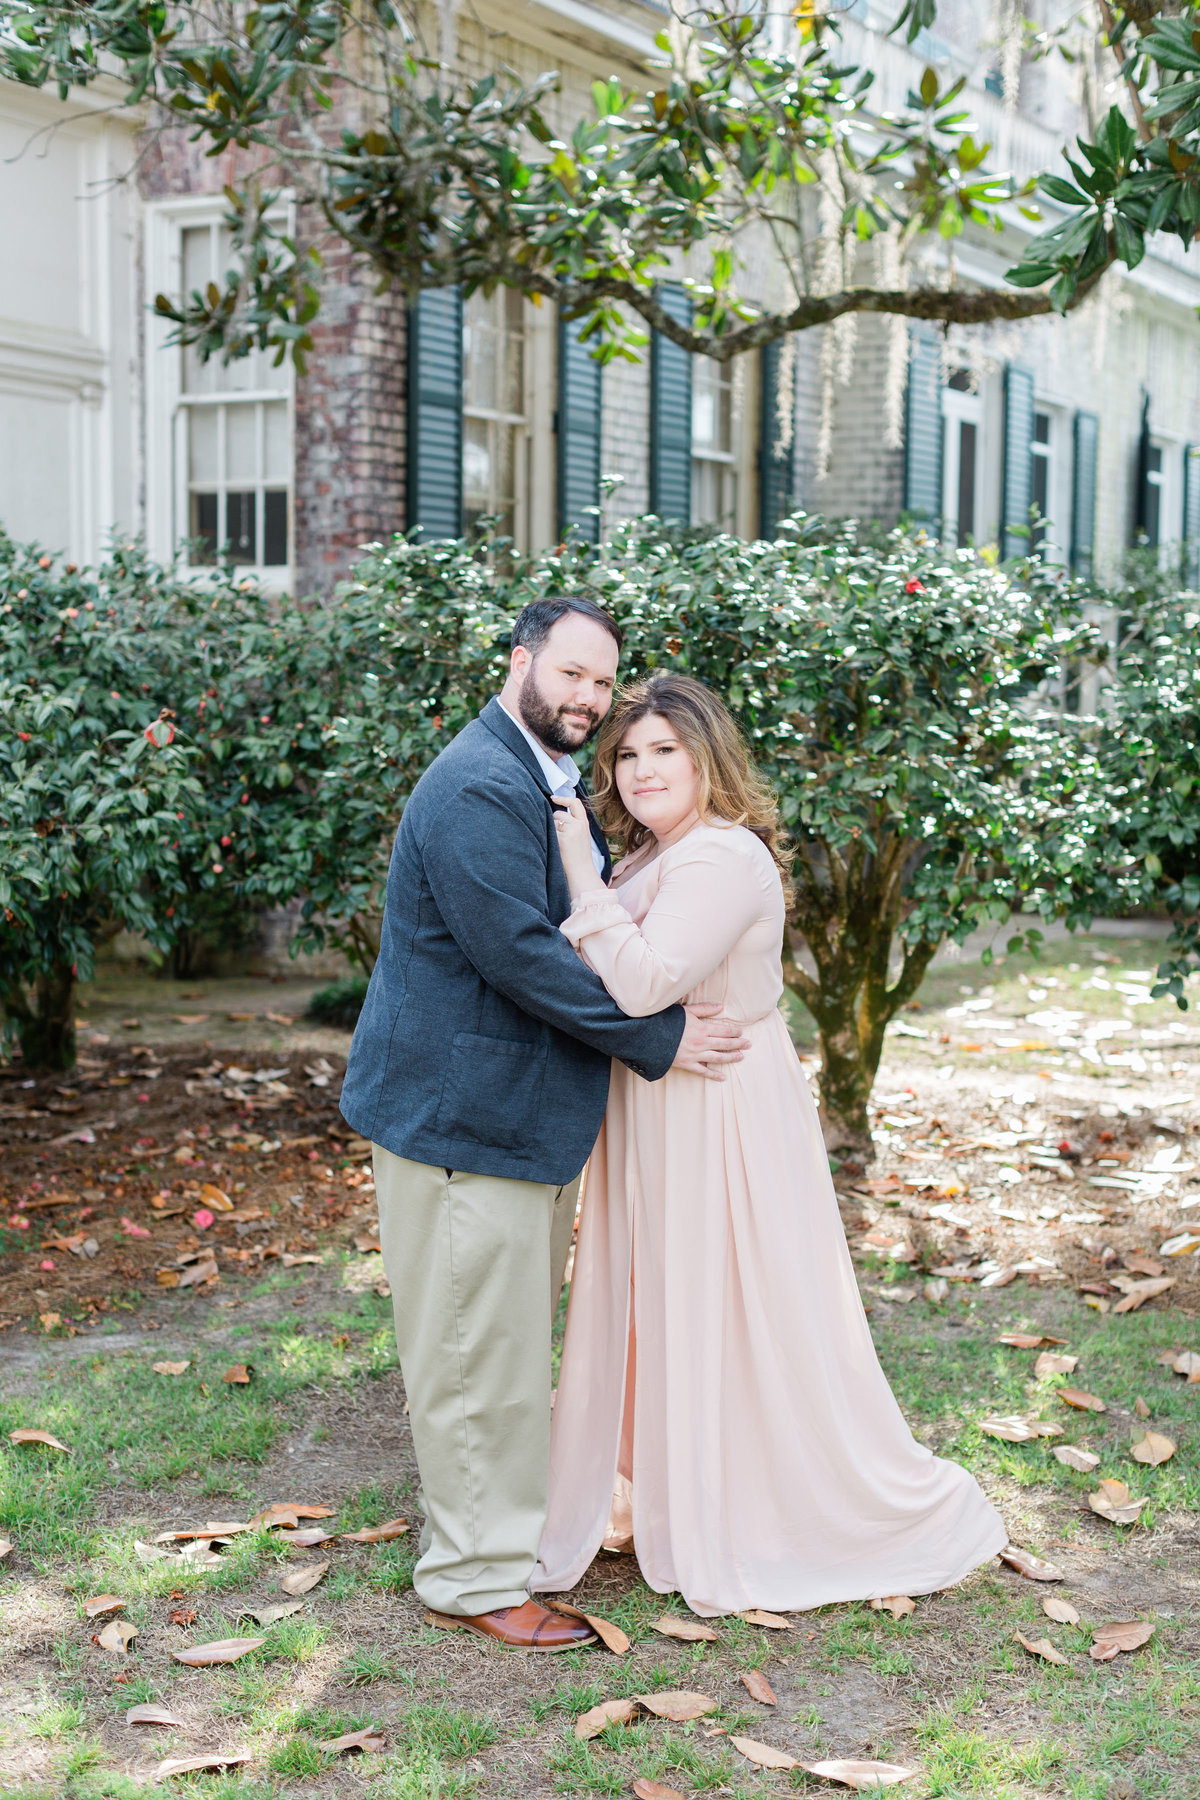 CourtneyWoodhamPhoto-72